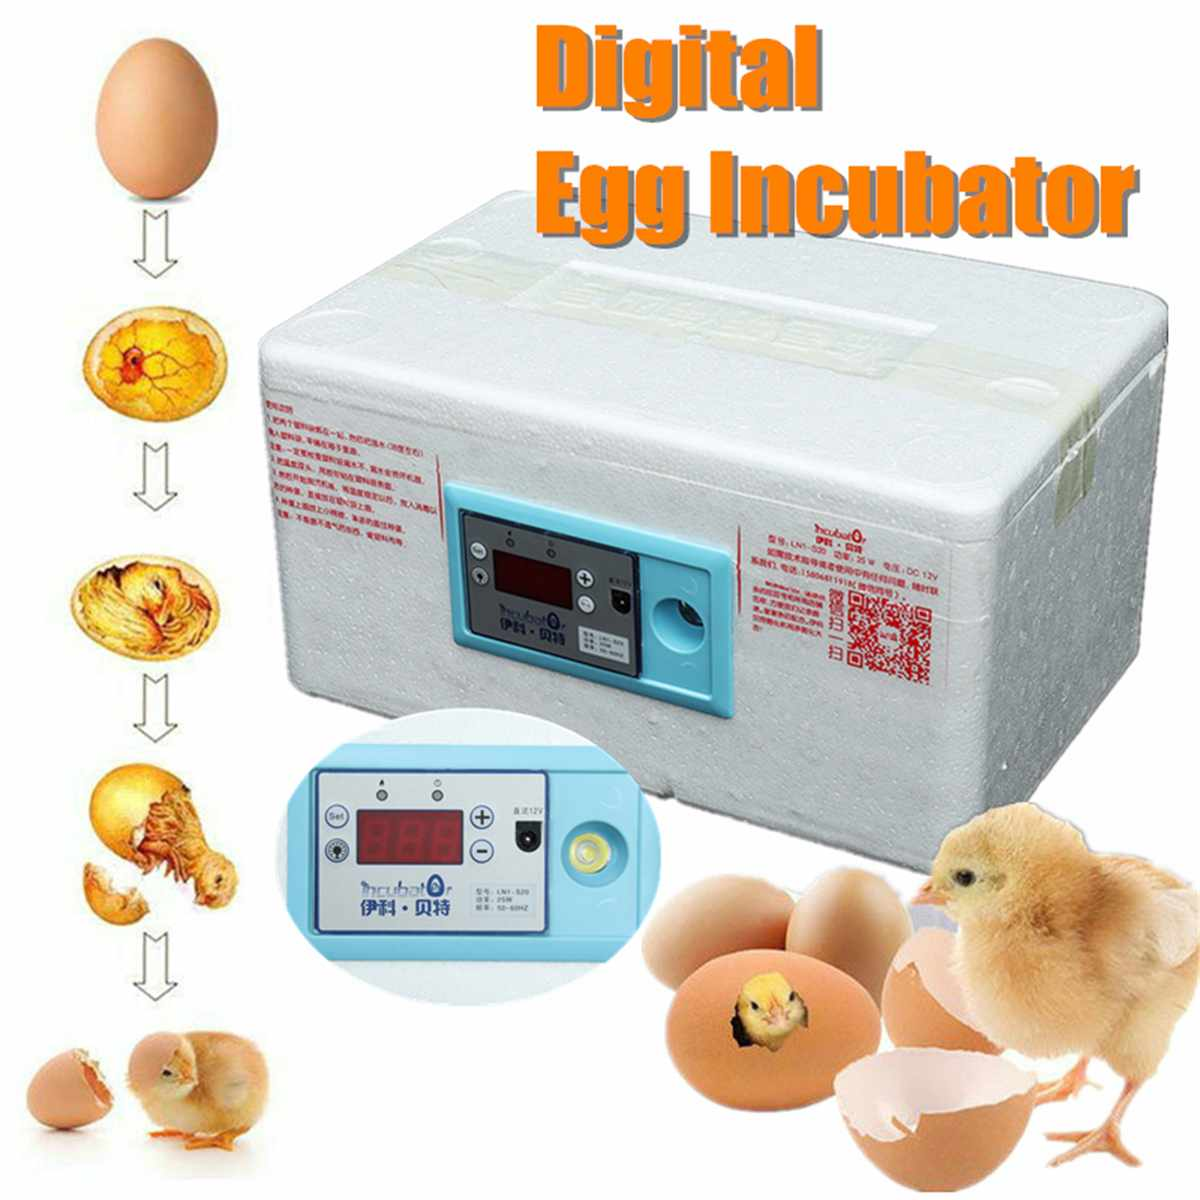 20 Position Automatic Digital Family Eggs Incubator Chicken Poultry Hatcher Home Foam Waterbed Incubator Farm Incubation Tools